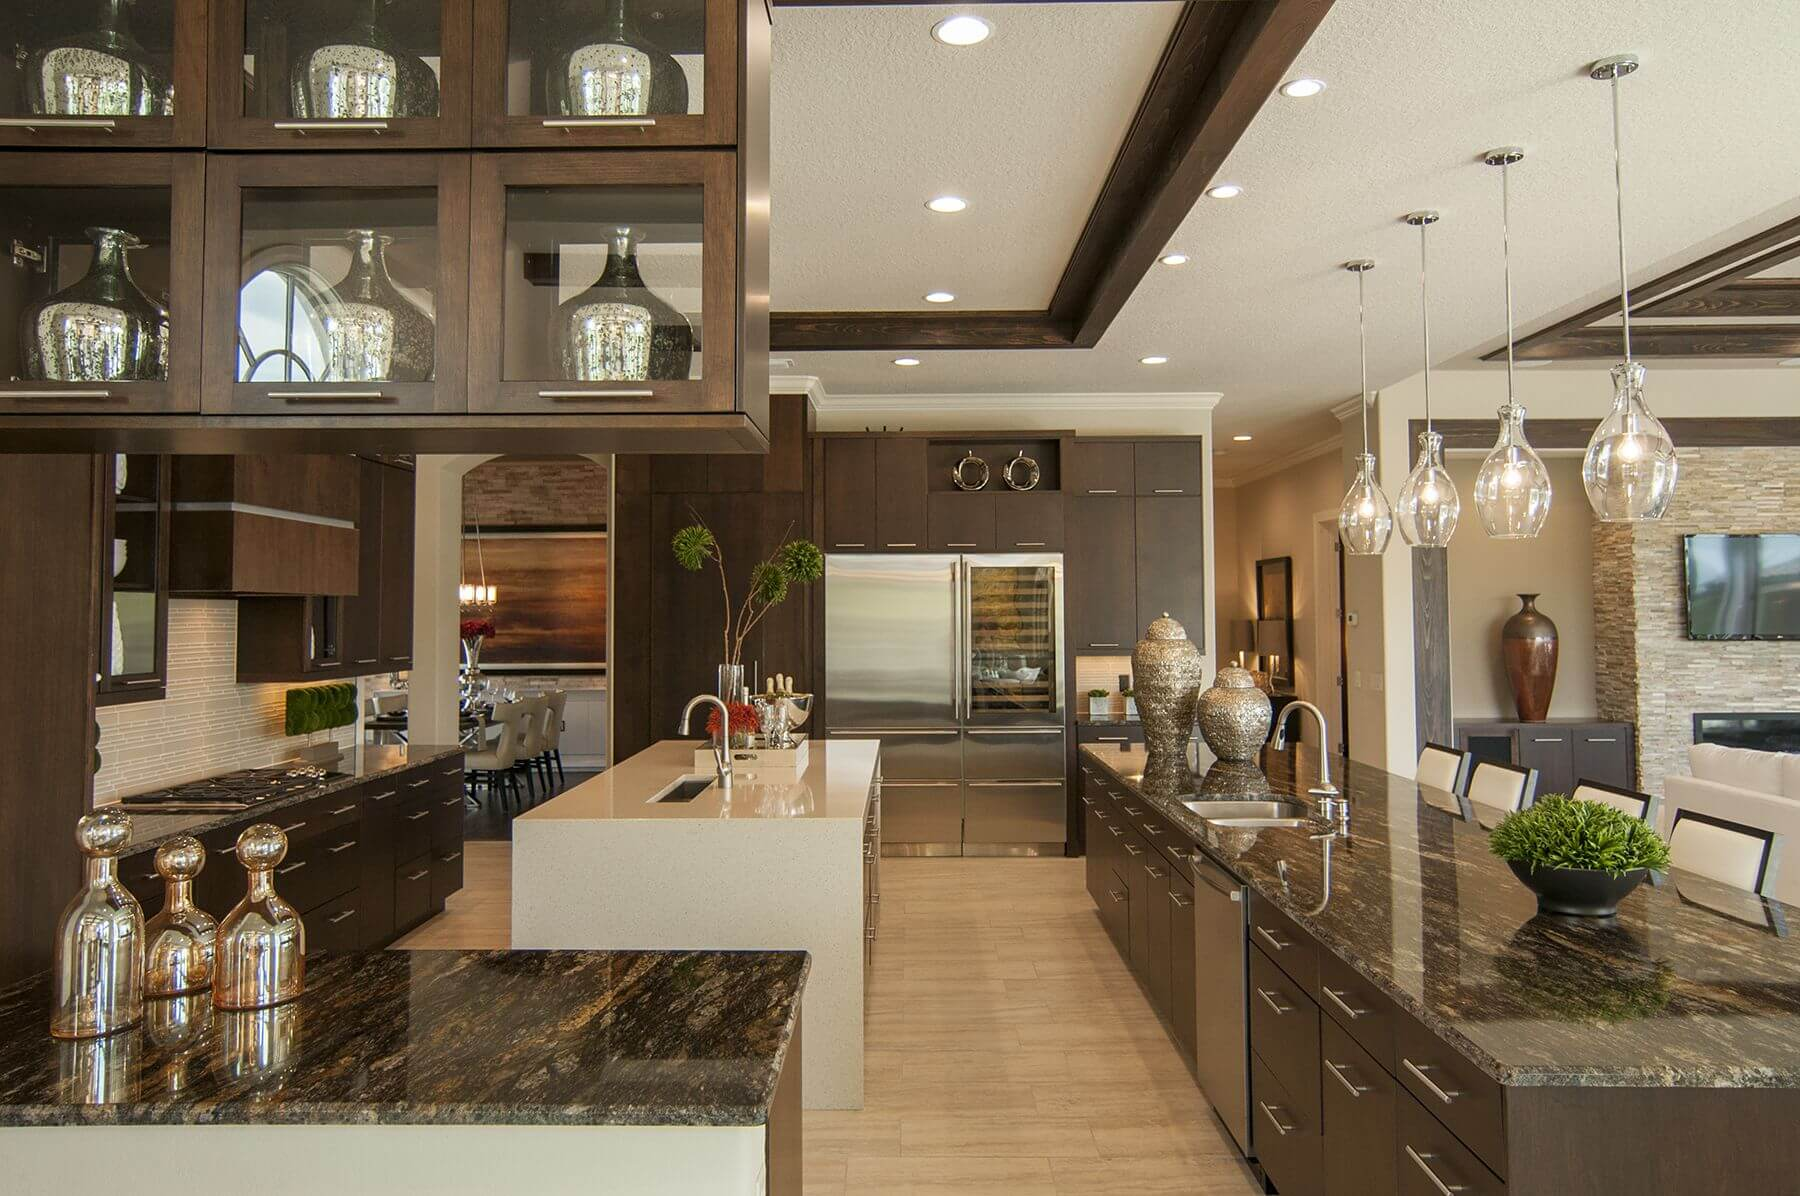 Dark Kitchens With Dark Wood OR Black Kitchen Cabinets - Dark brown kitchen cabinets wall color